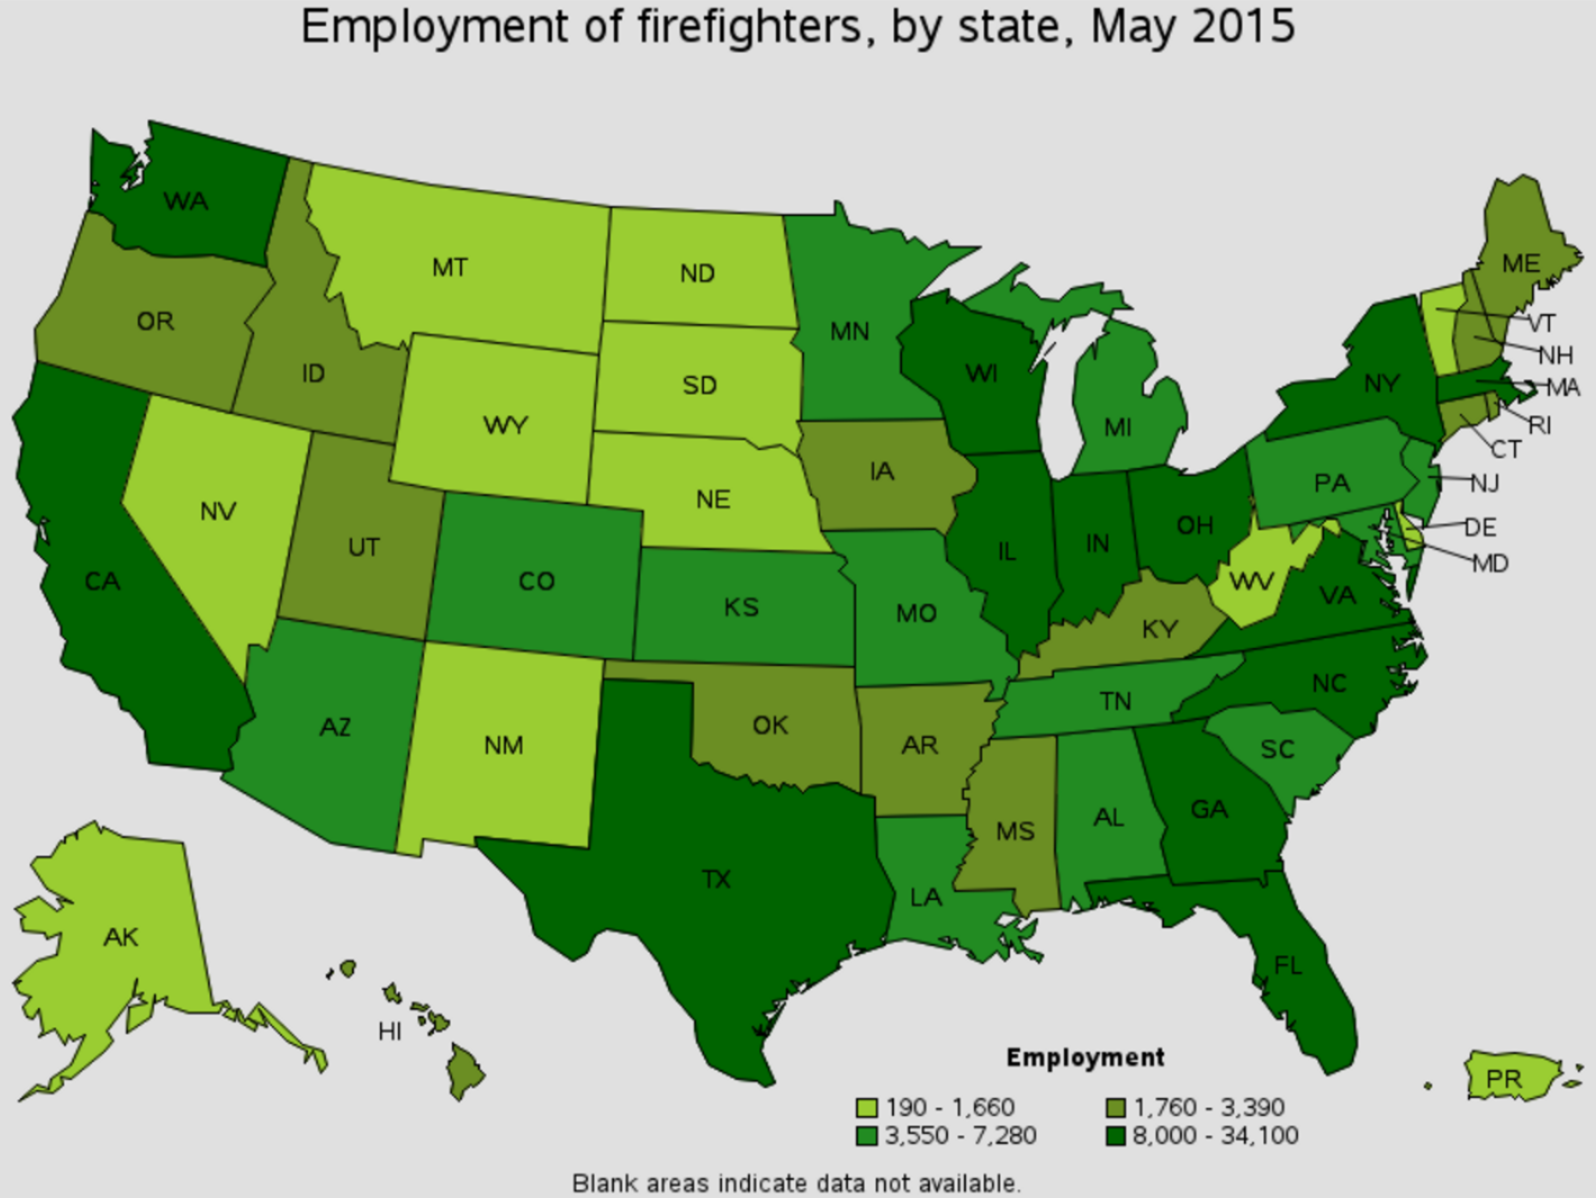 firefighter job outlook by state Warwick Rhode Island